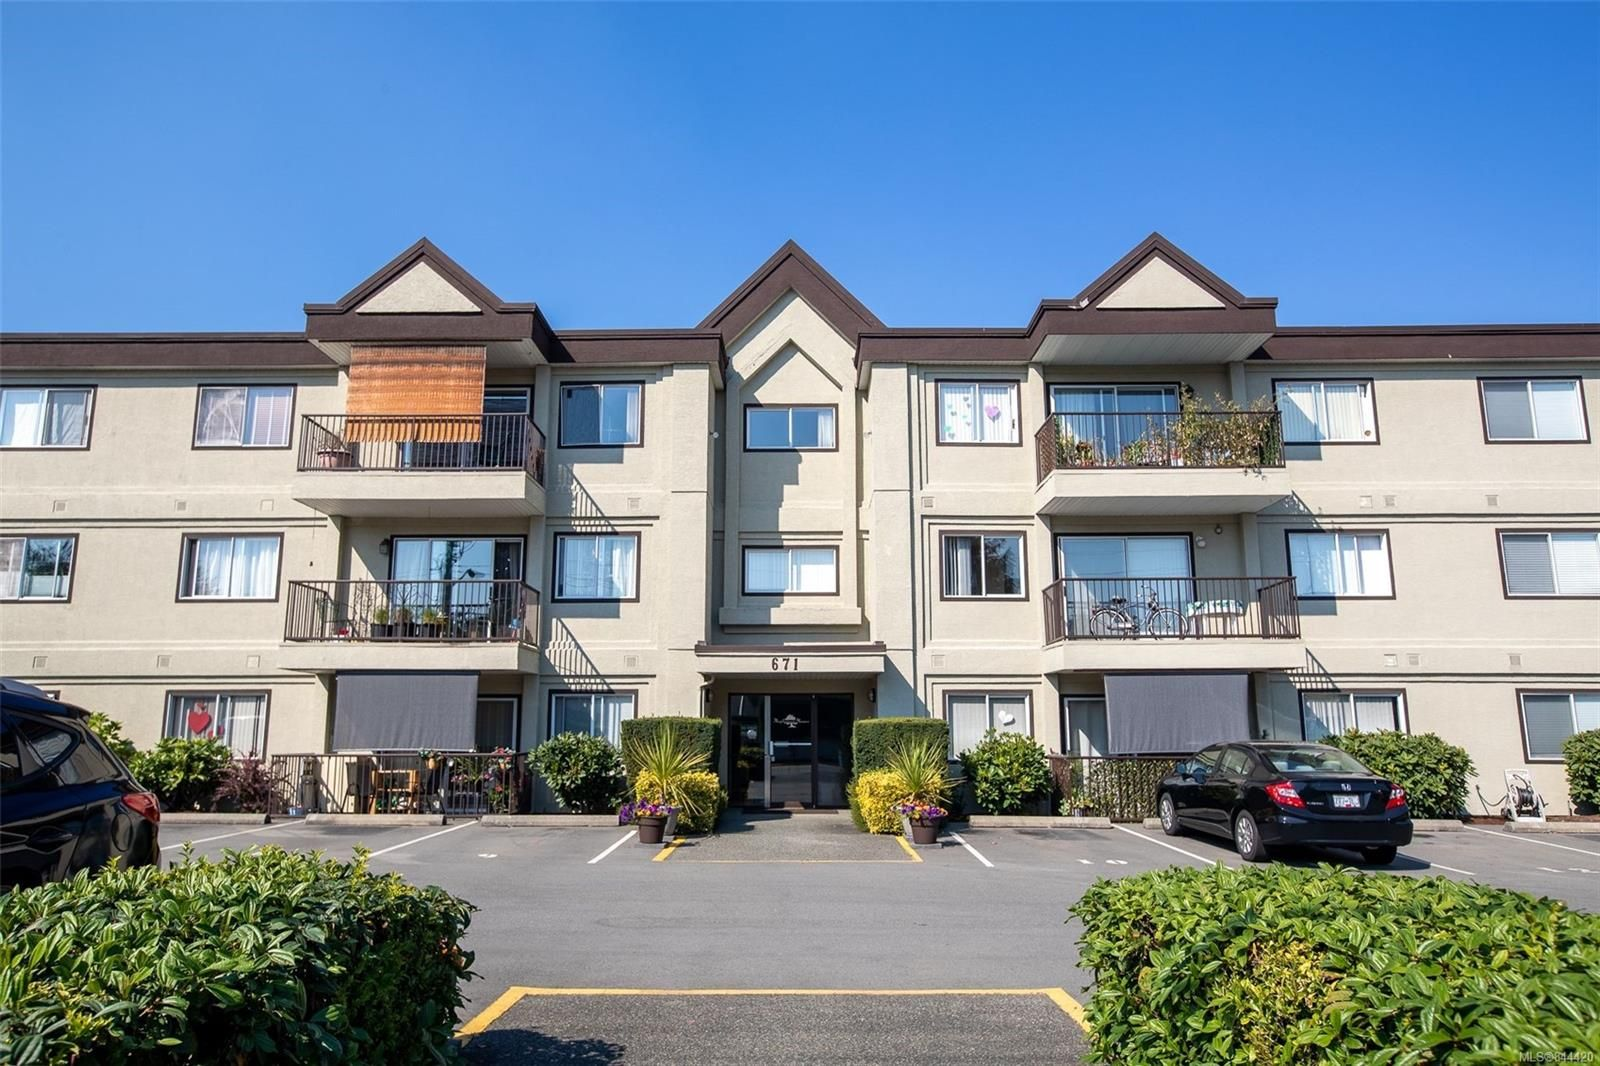 Photo 21: Photos: 207 671 Trunk Rd in Duncan: Du East Duncan Condo for sale : MLS®# 844420